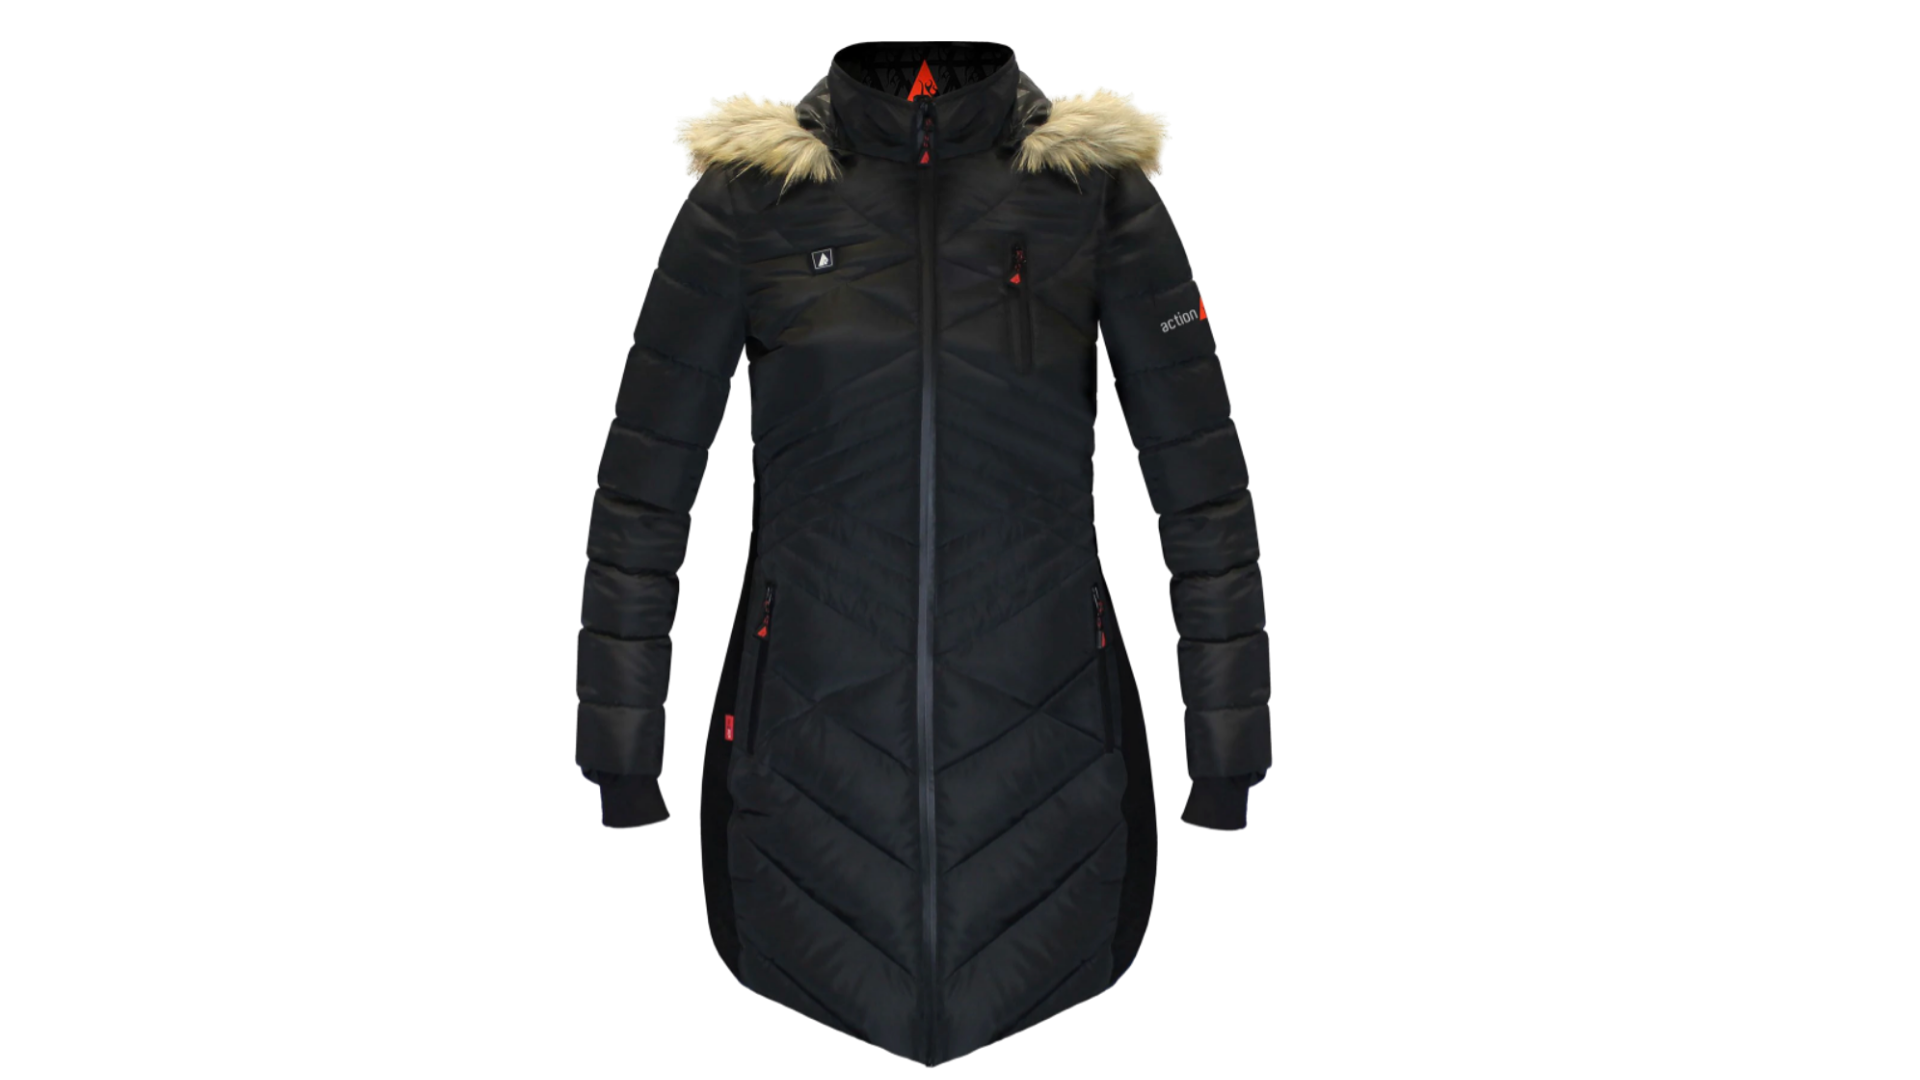 heated puffer jacket best women's winter coats for extreme cold